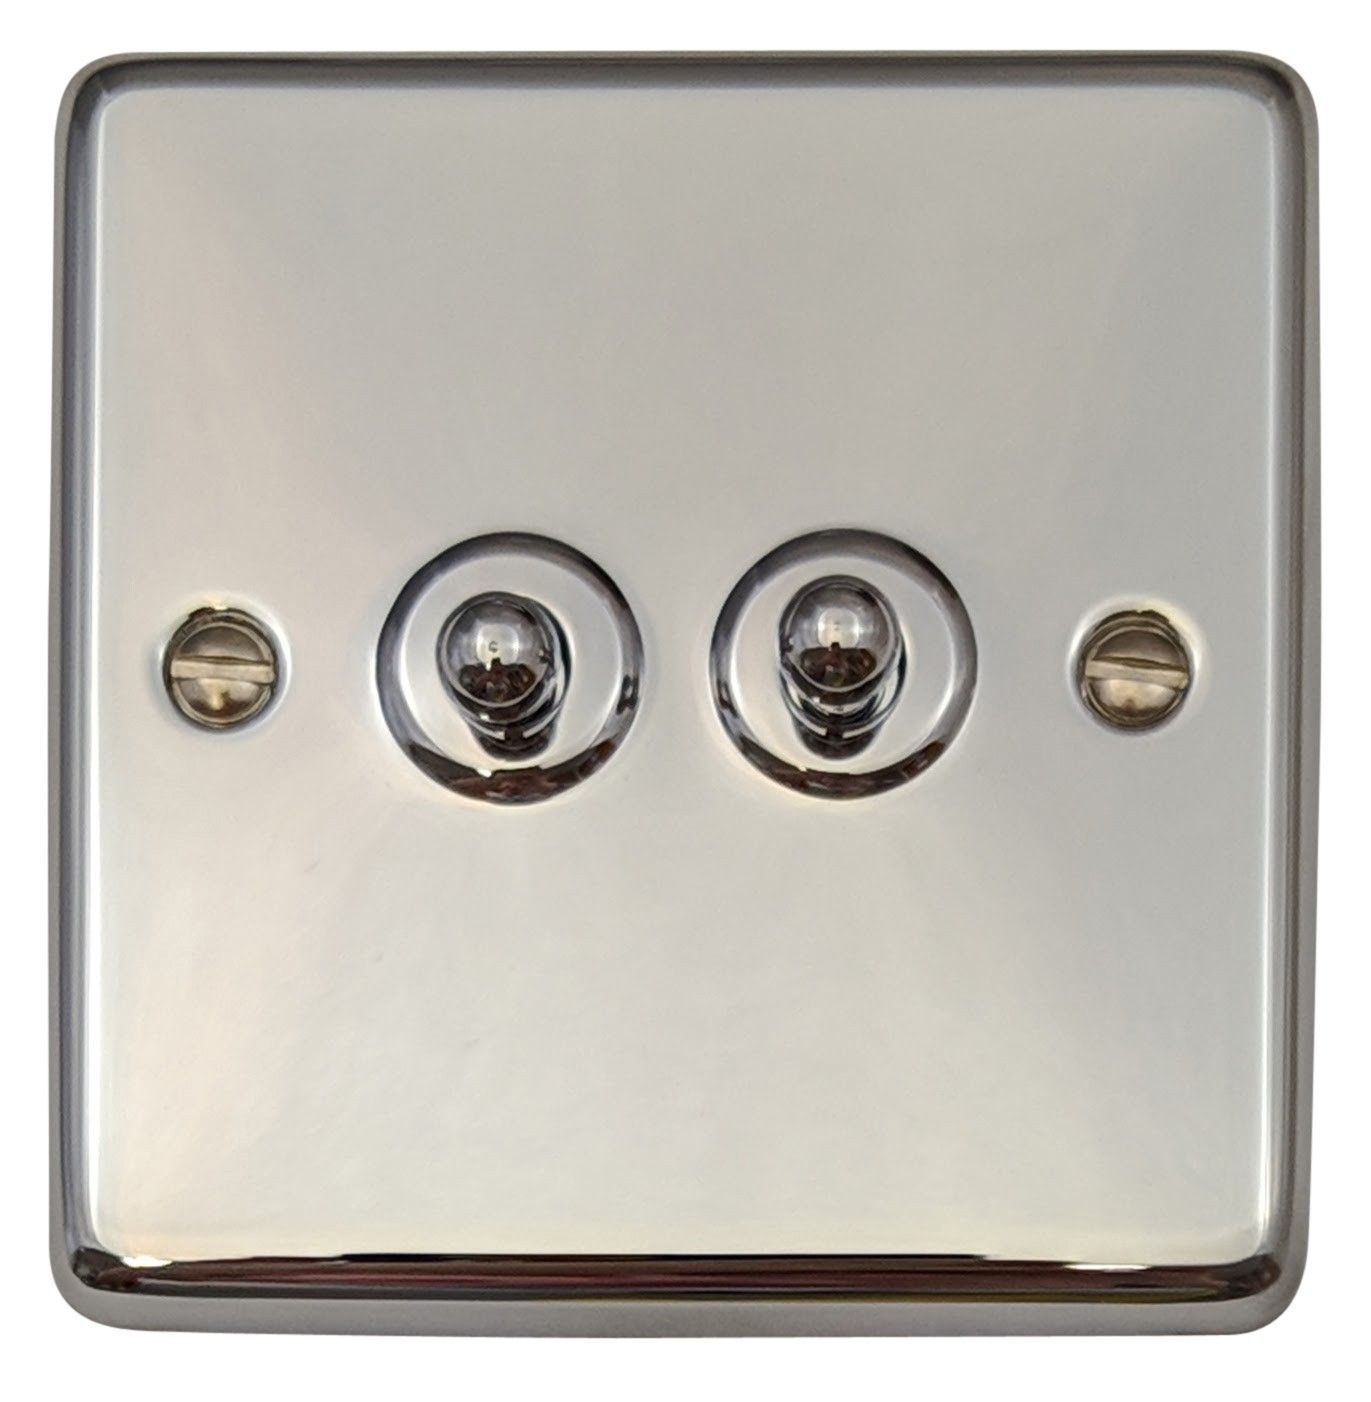 G&H CC282 Standard Plate Polished Chrome 2 Gang 1 or 2 Way Toggle Light Switch